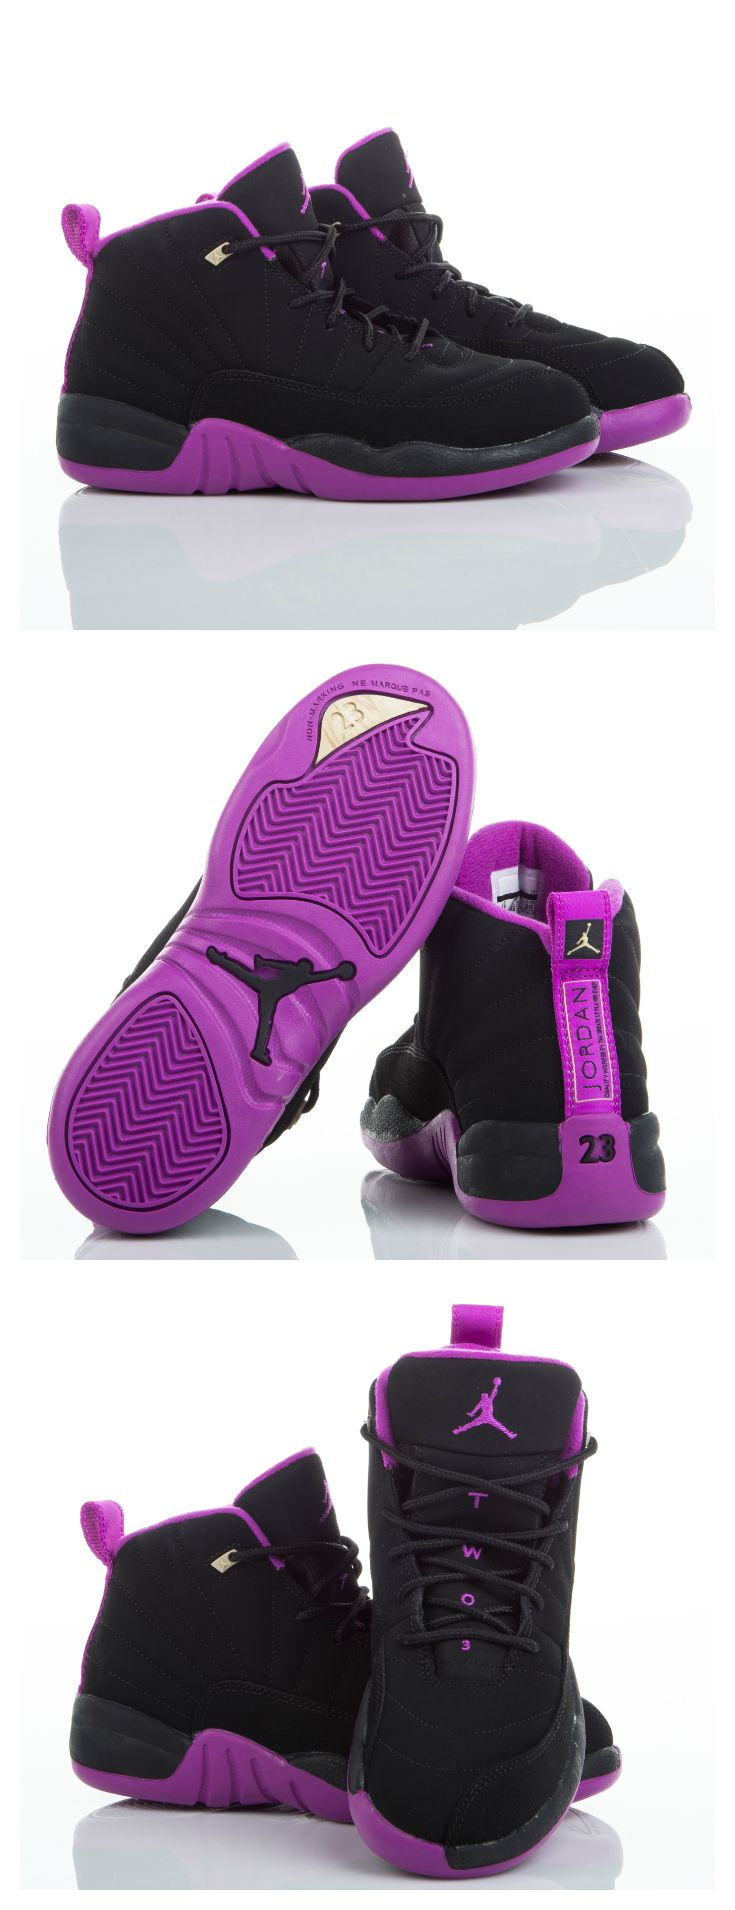 best 25 jordans ideas on pinterest air jordans women